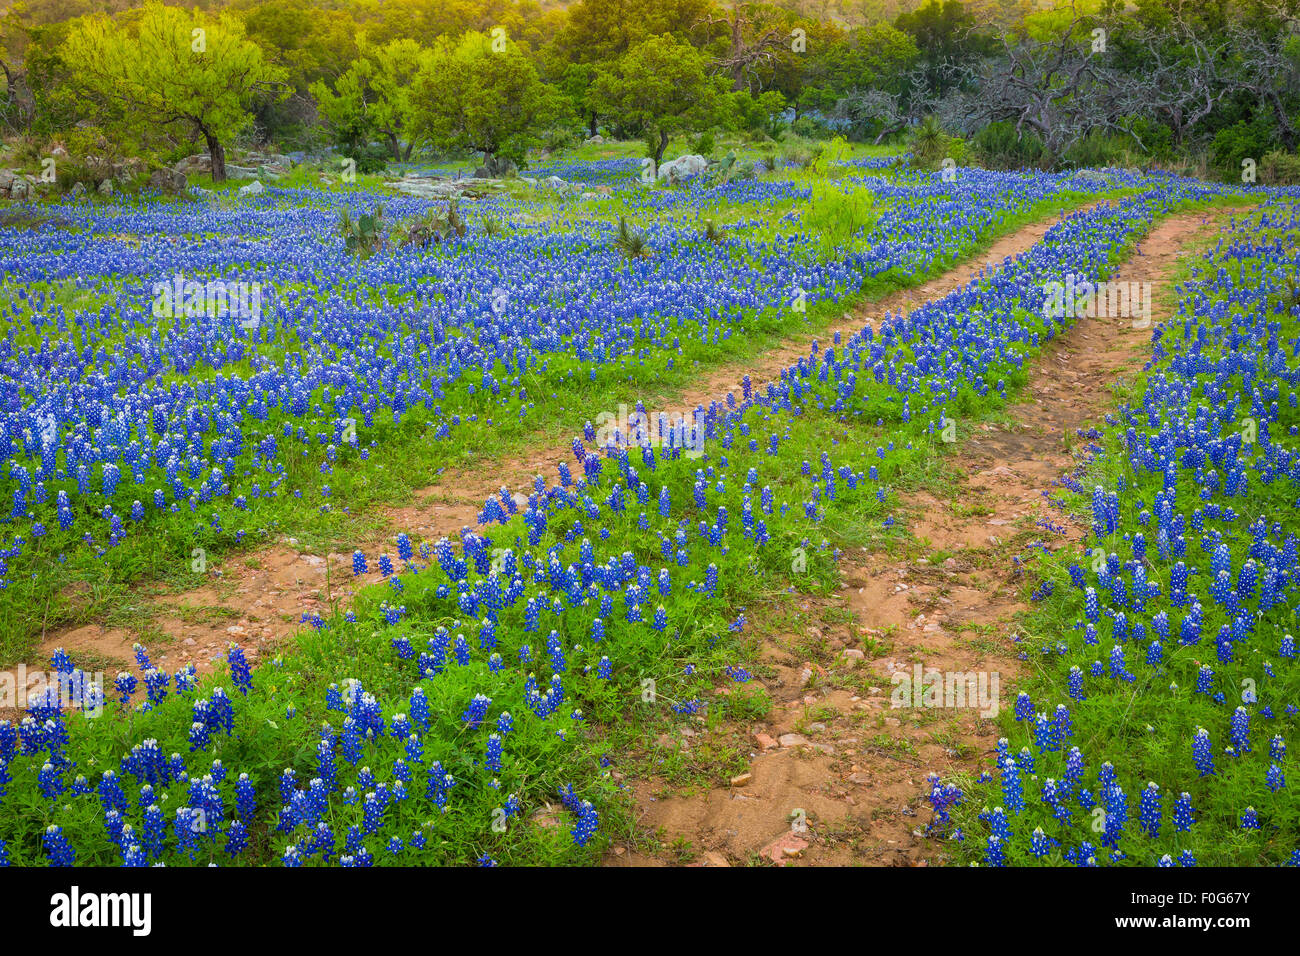 Old road and bluebonnets in the Texas Hill Country - Stock Image